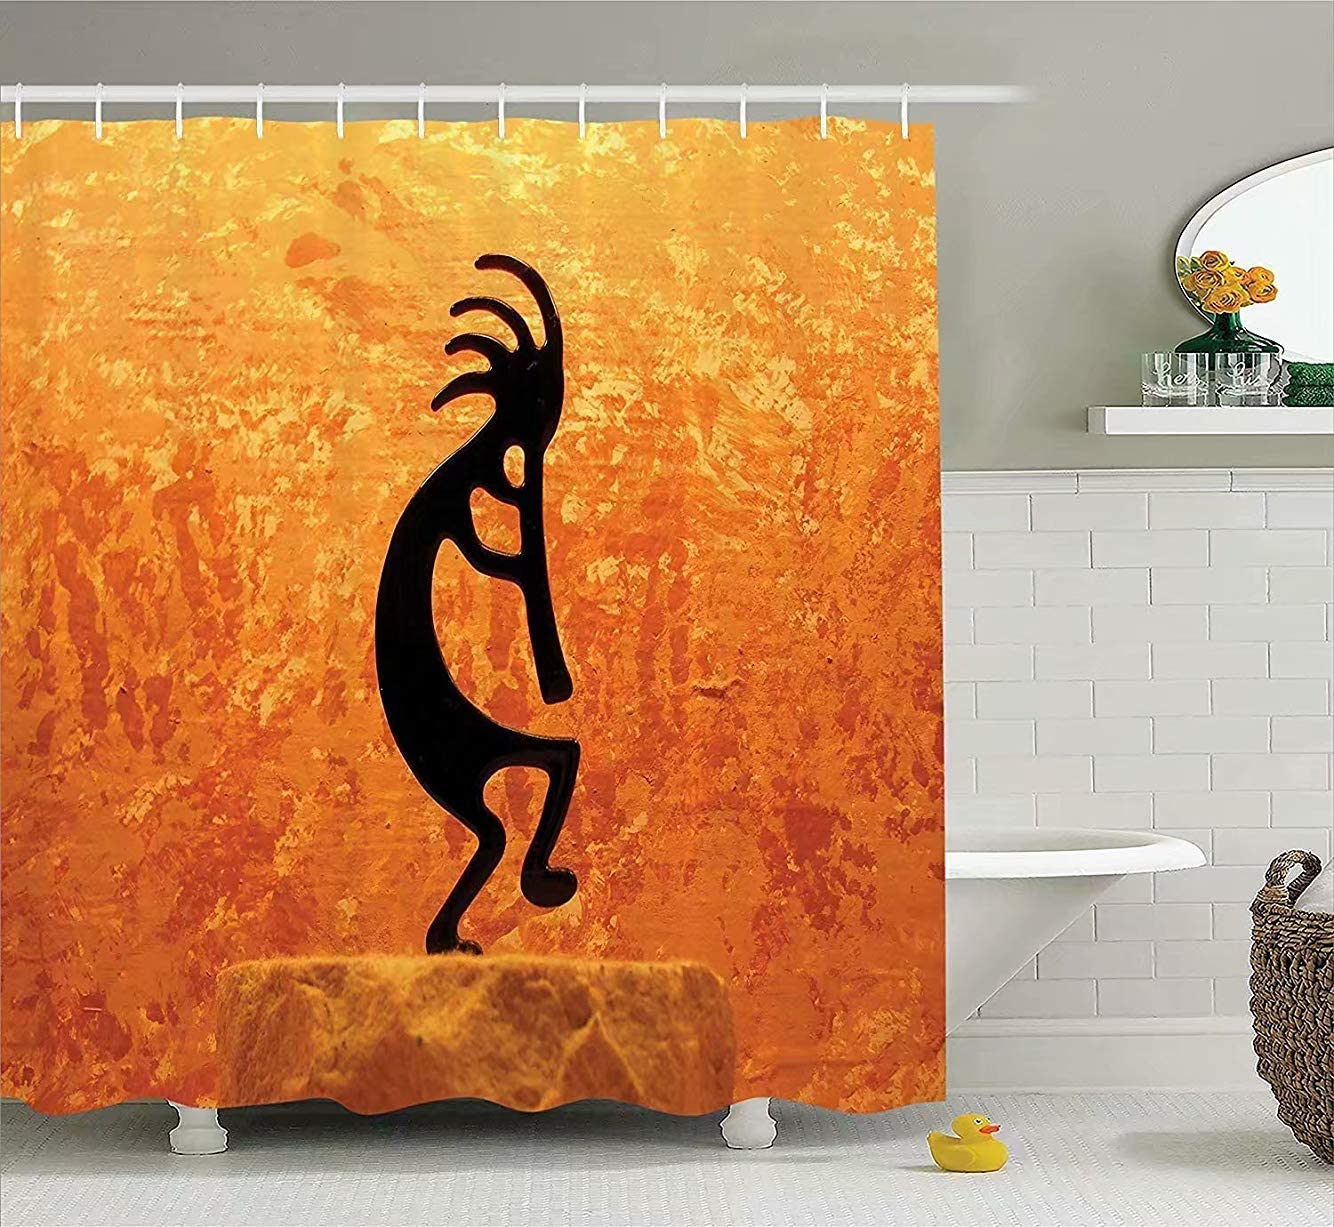 AshasdS Shower Curtains,Kokopelli Decor,Southwestern Style,Orange  Black,Shower Curtain Clear,Waterproof Fabric Bathroom Decor with Hooks,  Bathroom